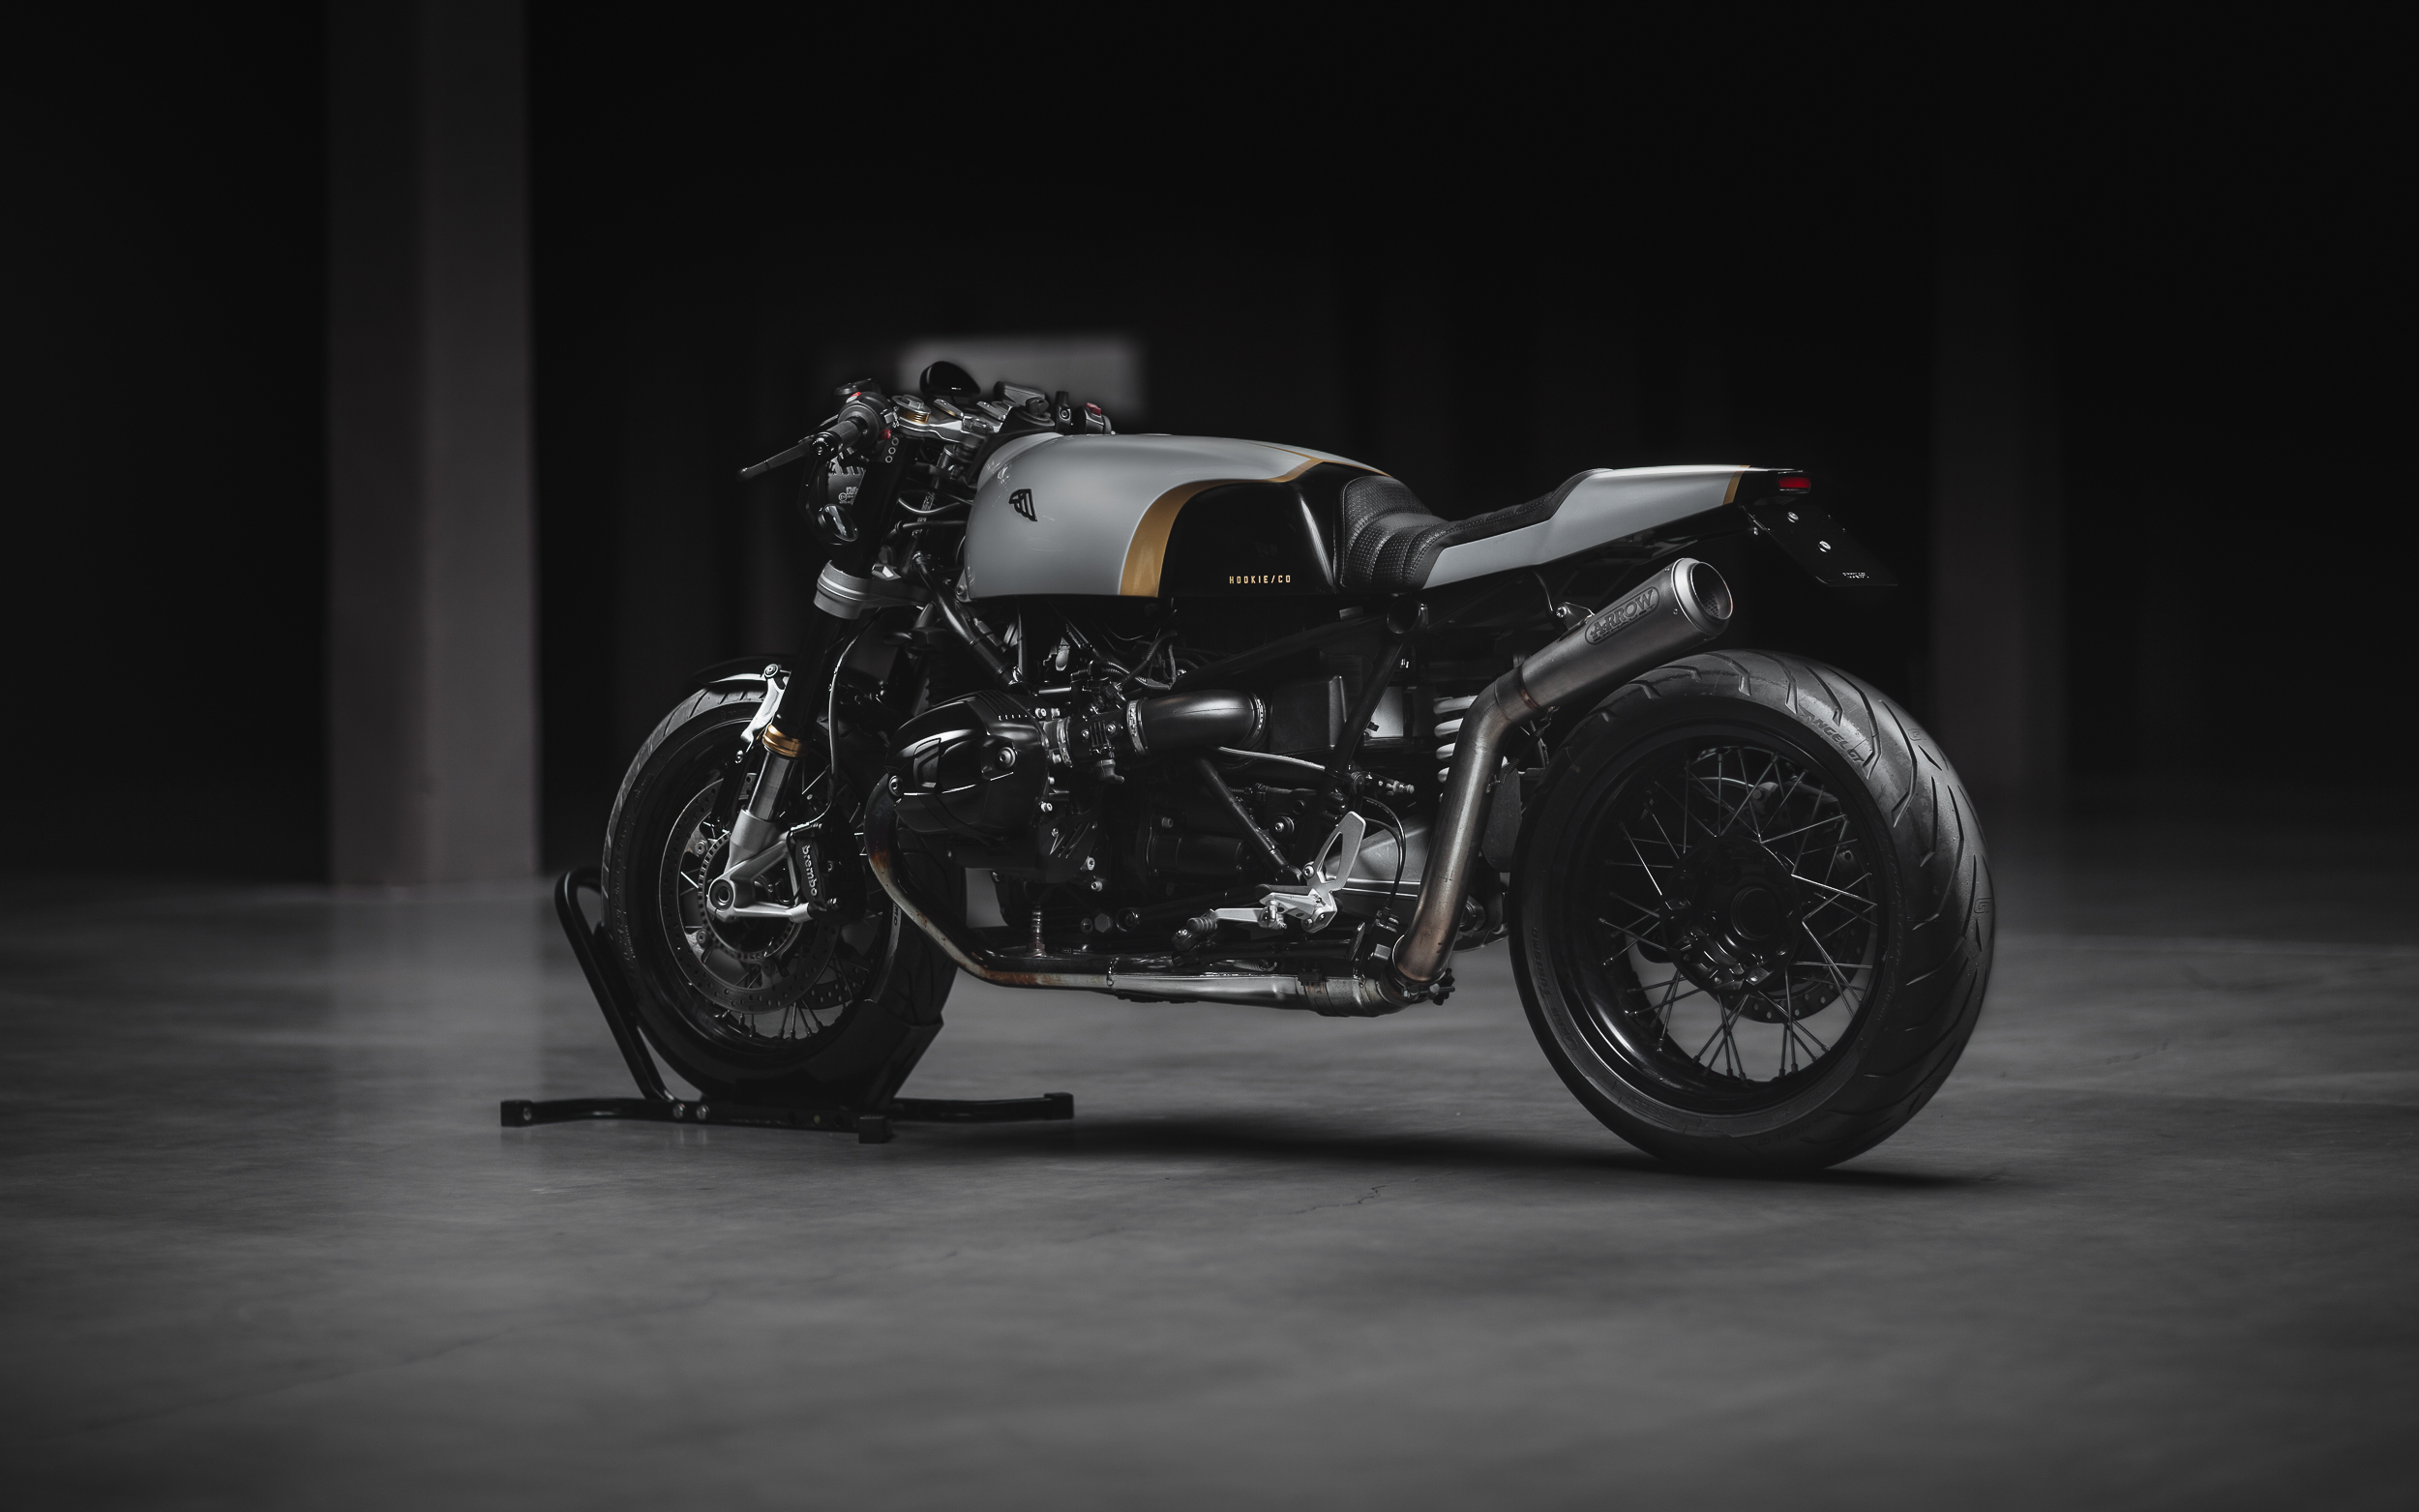 BMW R9T Rear, HD Bikes, 4k Wallpapers, Images, Backgrounds ...